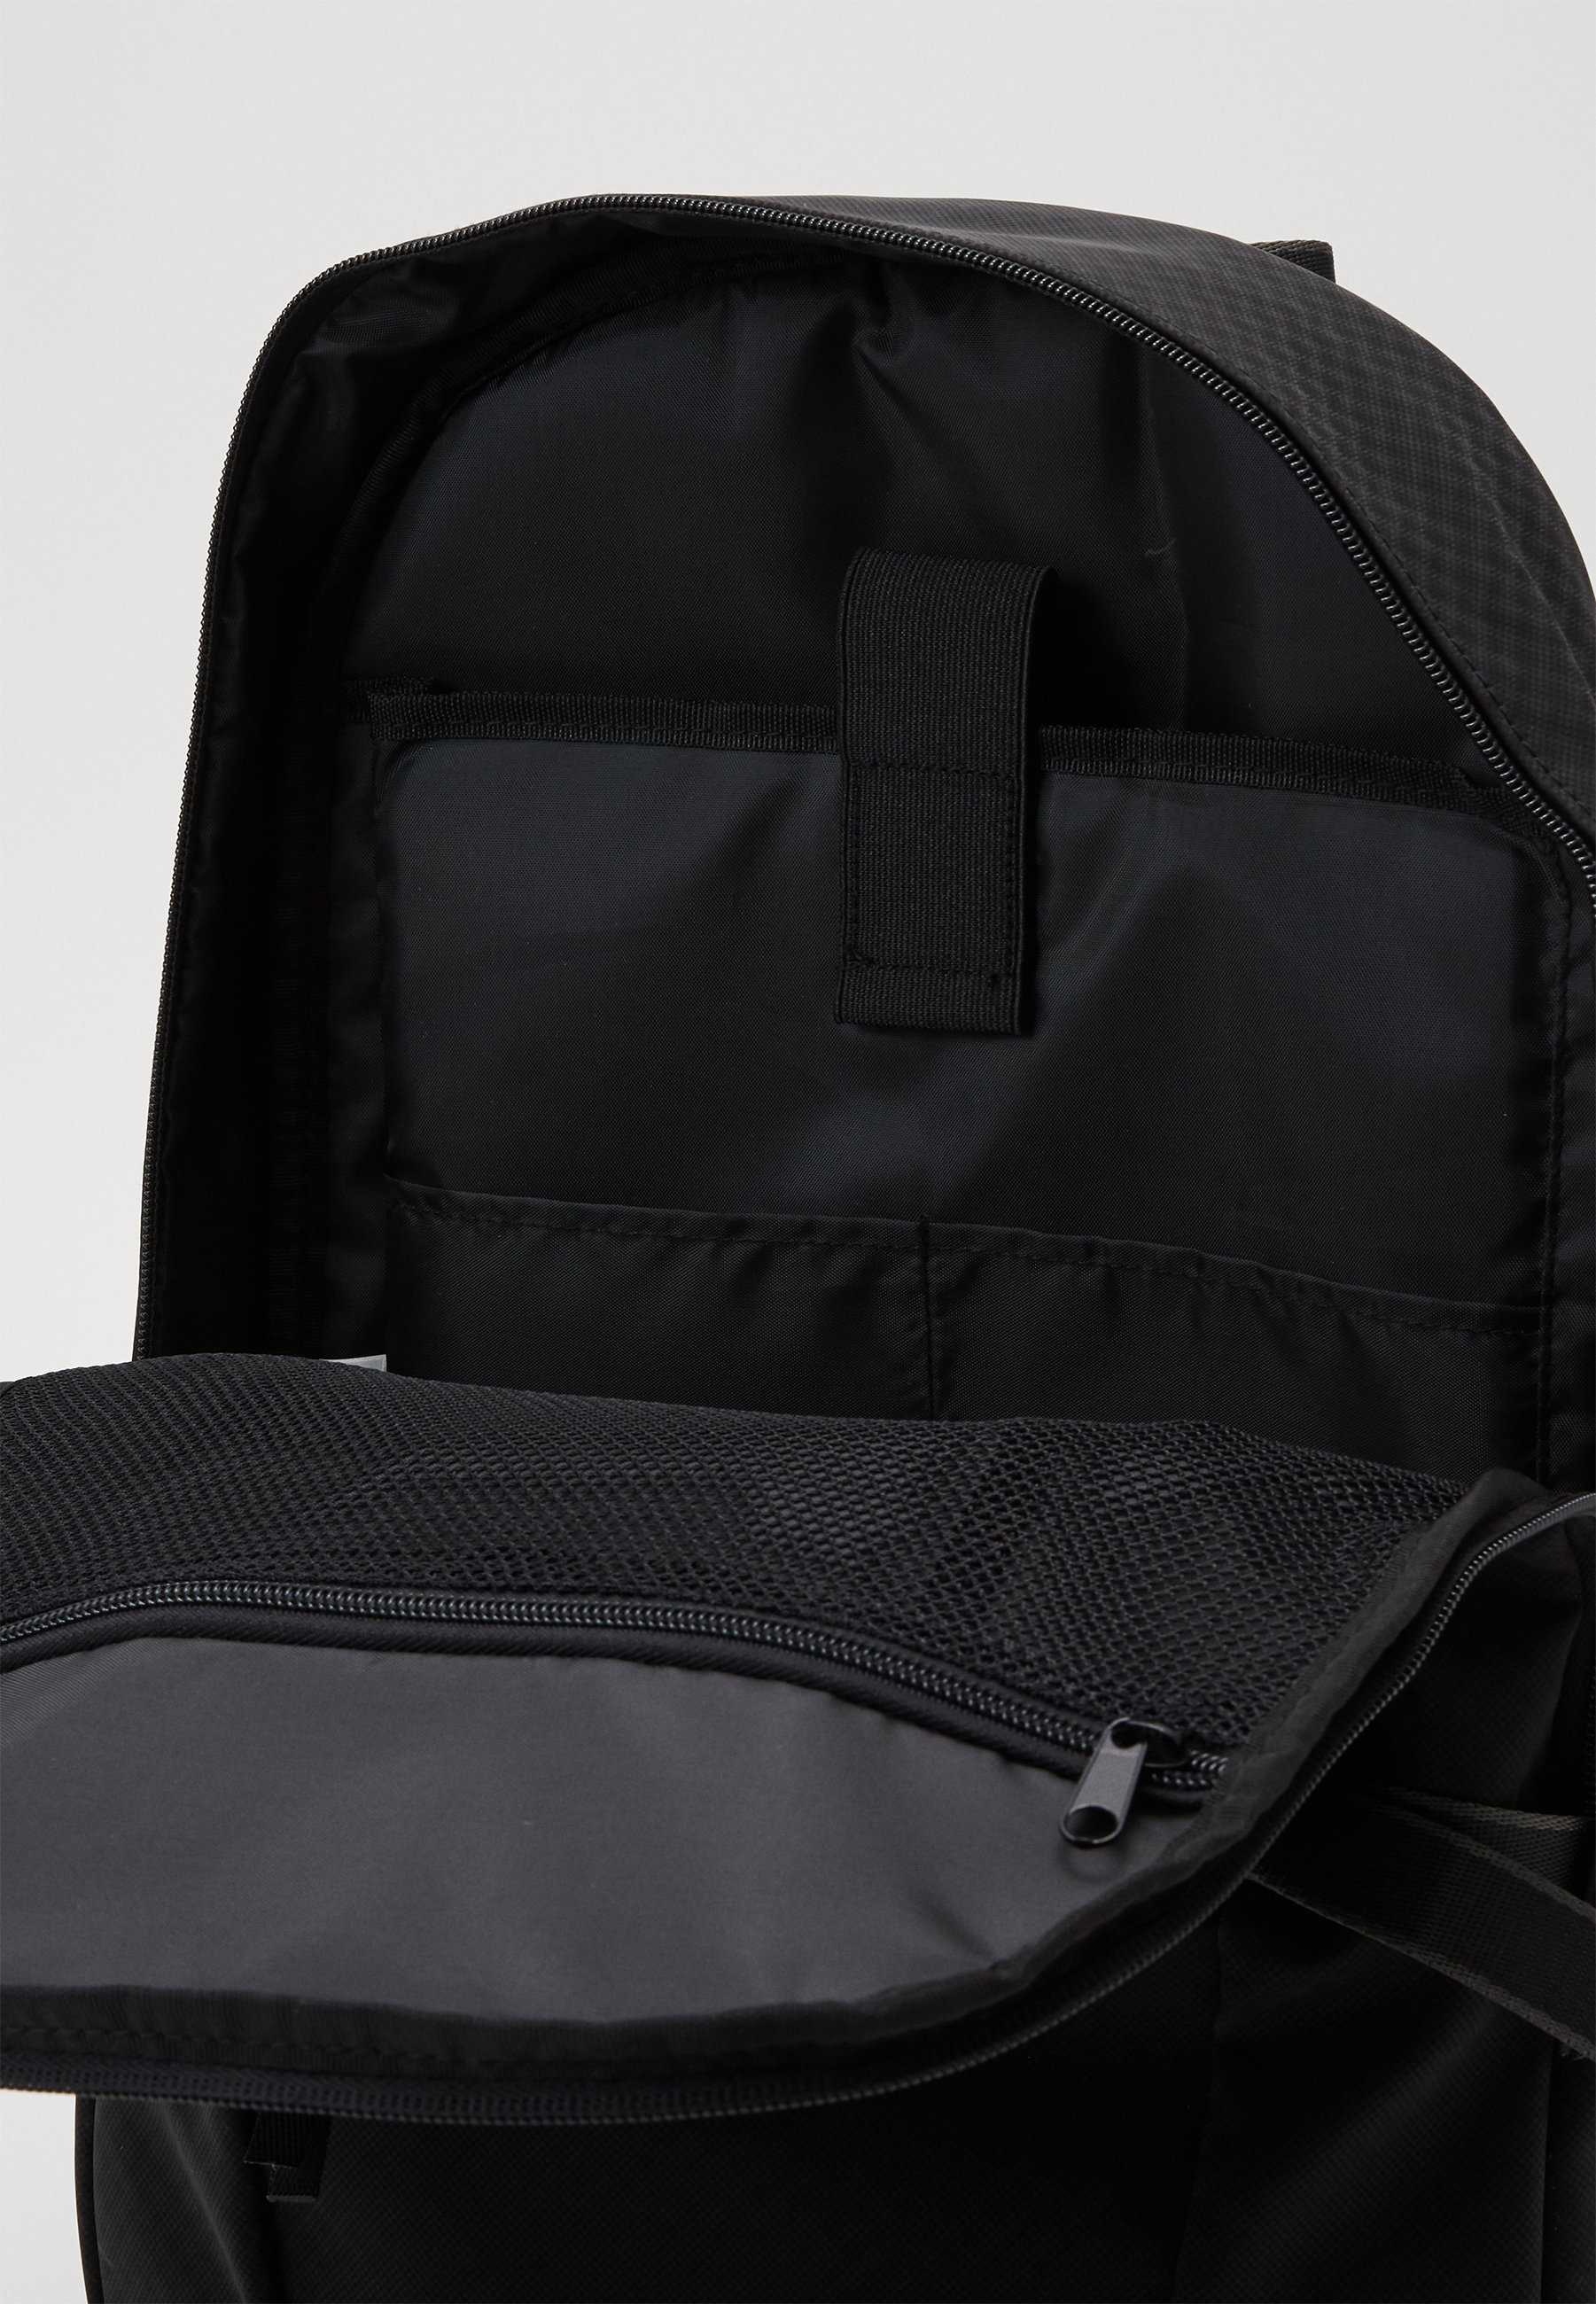 Superdry COMBRAY SLIMLINE BACKPACK - Ryggsekk - black/svart 5JzRGbx8fGxs9eh